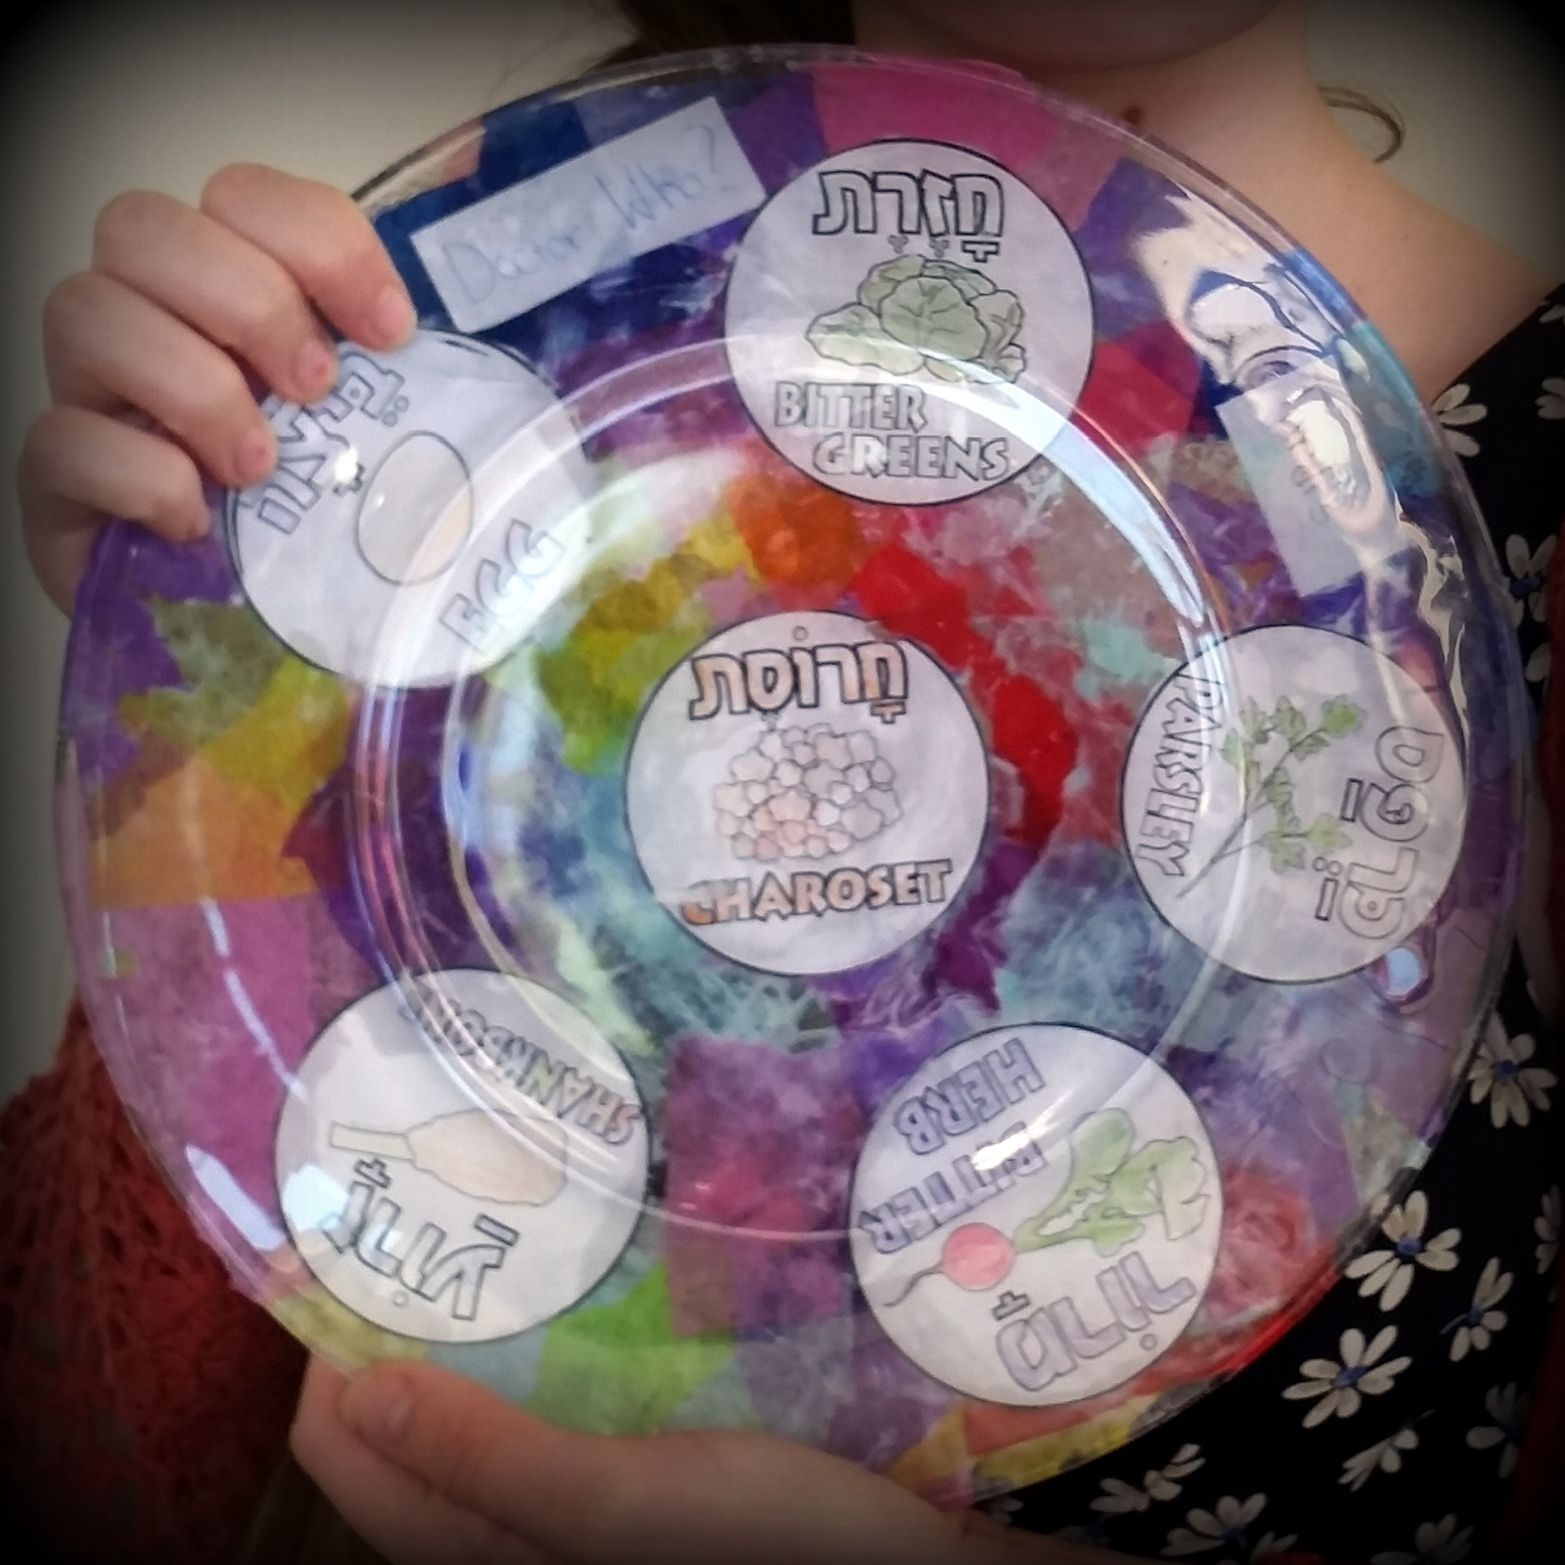 Use A Seder Plate Template And Some Torn Up Tissue Paper Kids Love Ripping Tissue Paper To